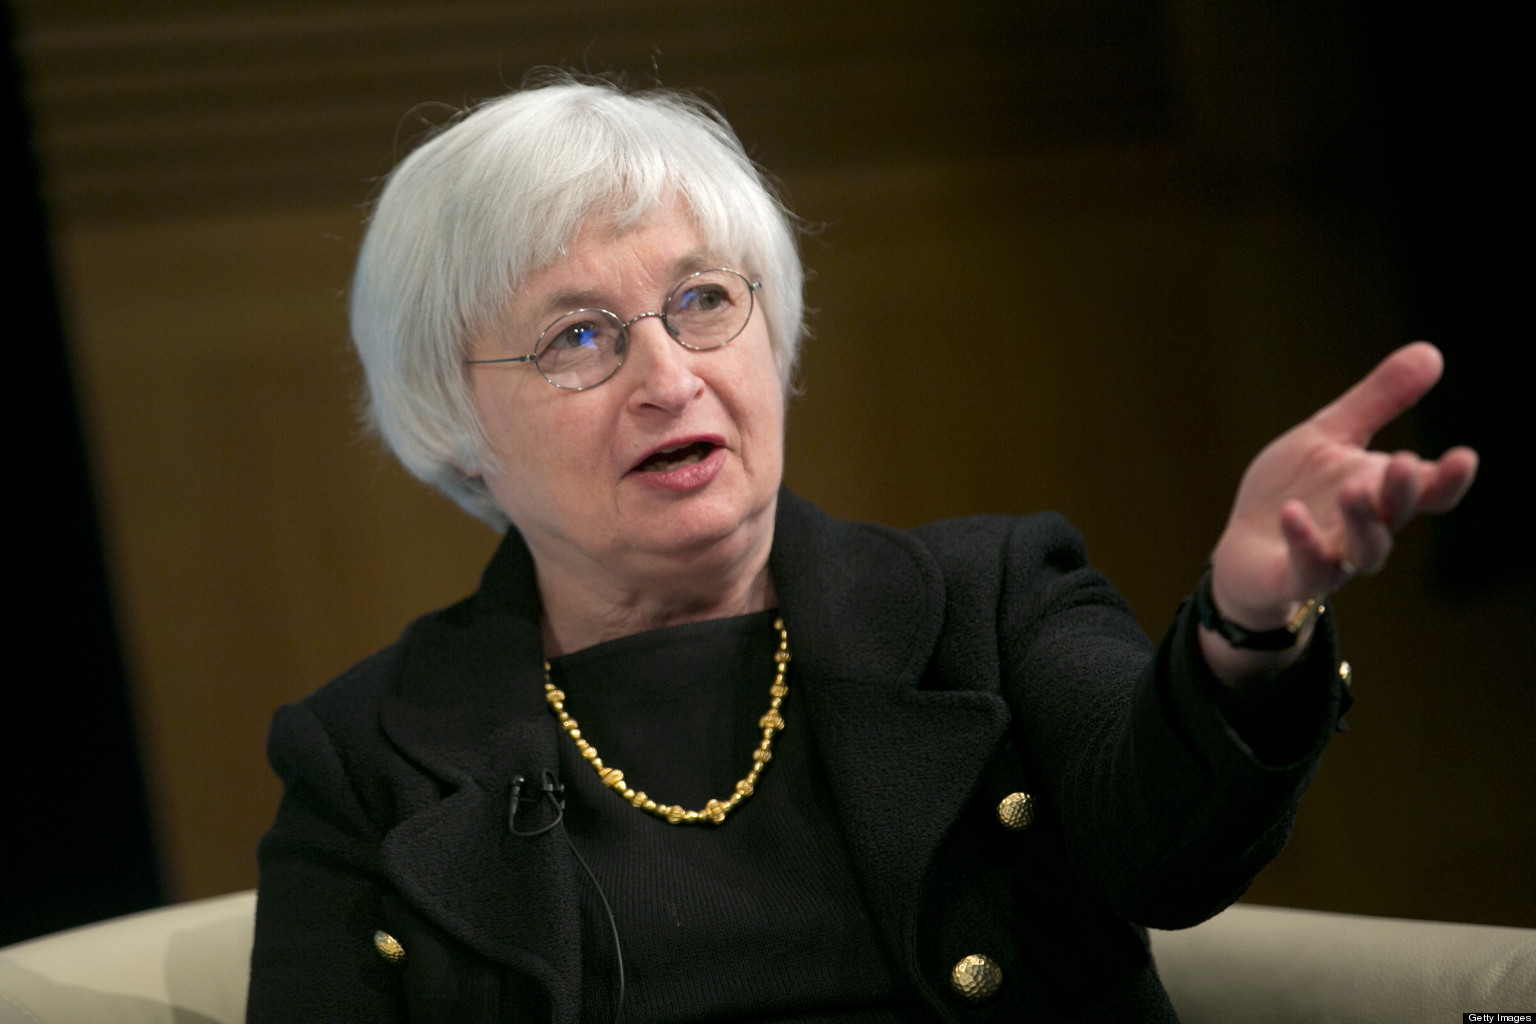 Janet Yellen Was Elected to Be the Chair of the Fed